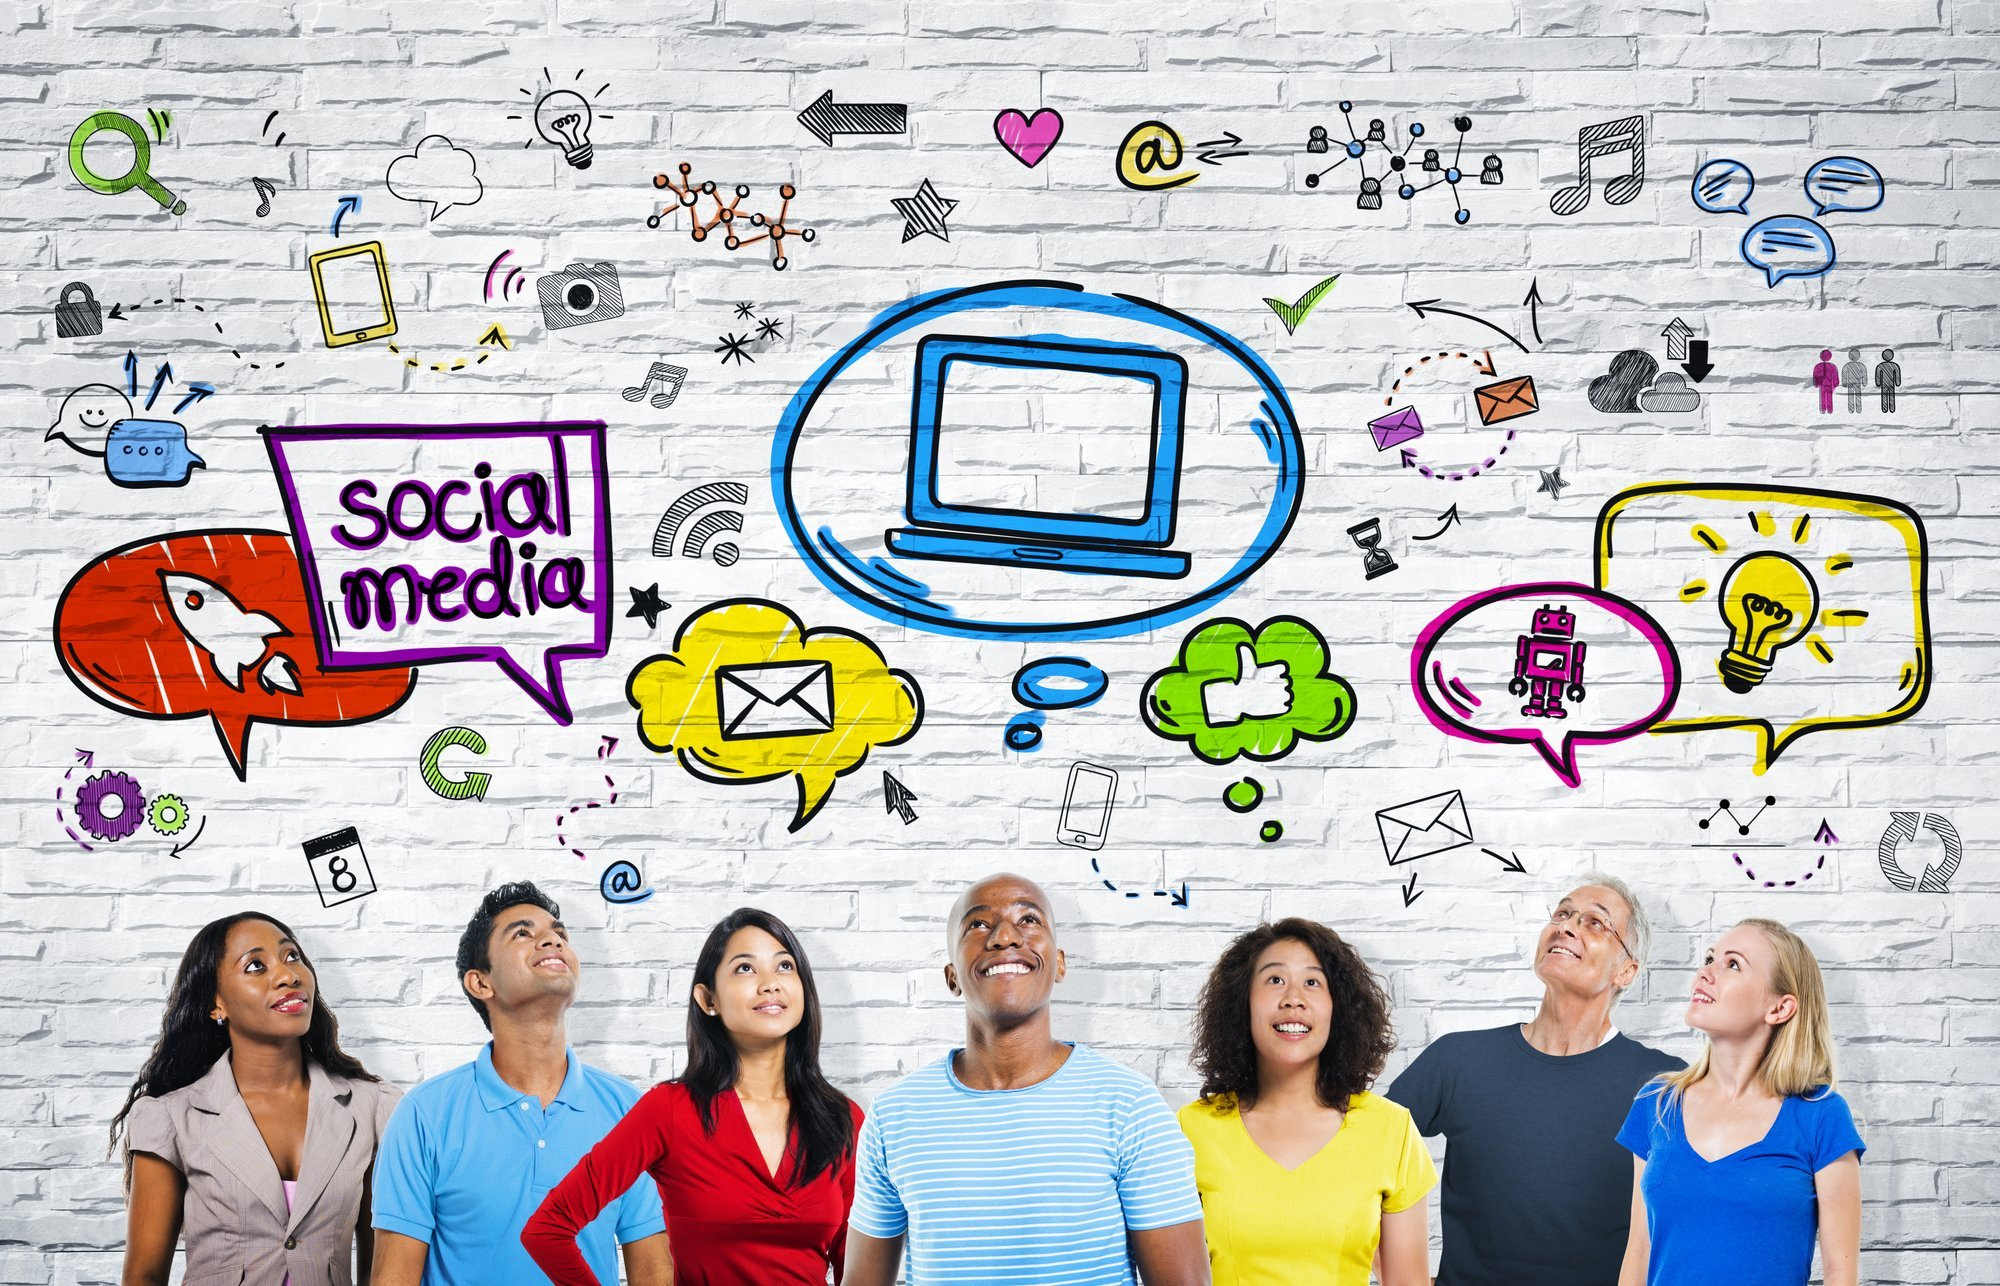 The importance of social media for the small businesses